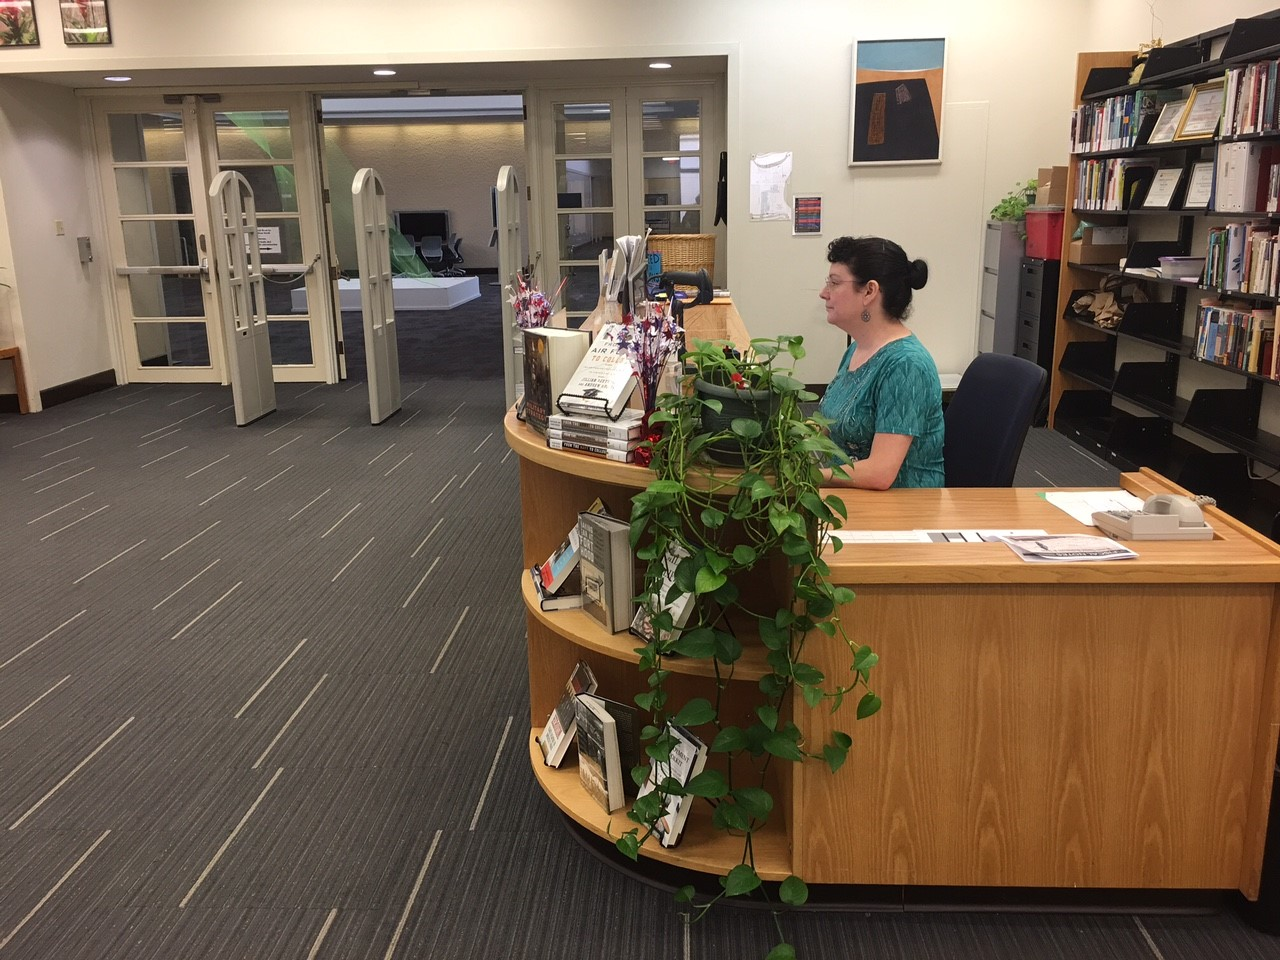 Photo of Circulation Desk in the Mountain View College Library